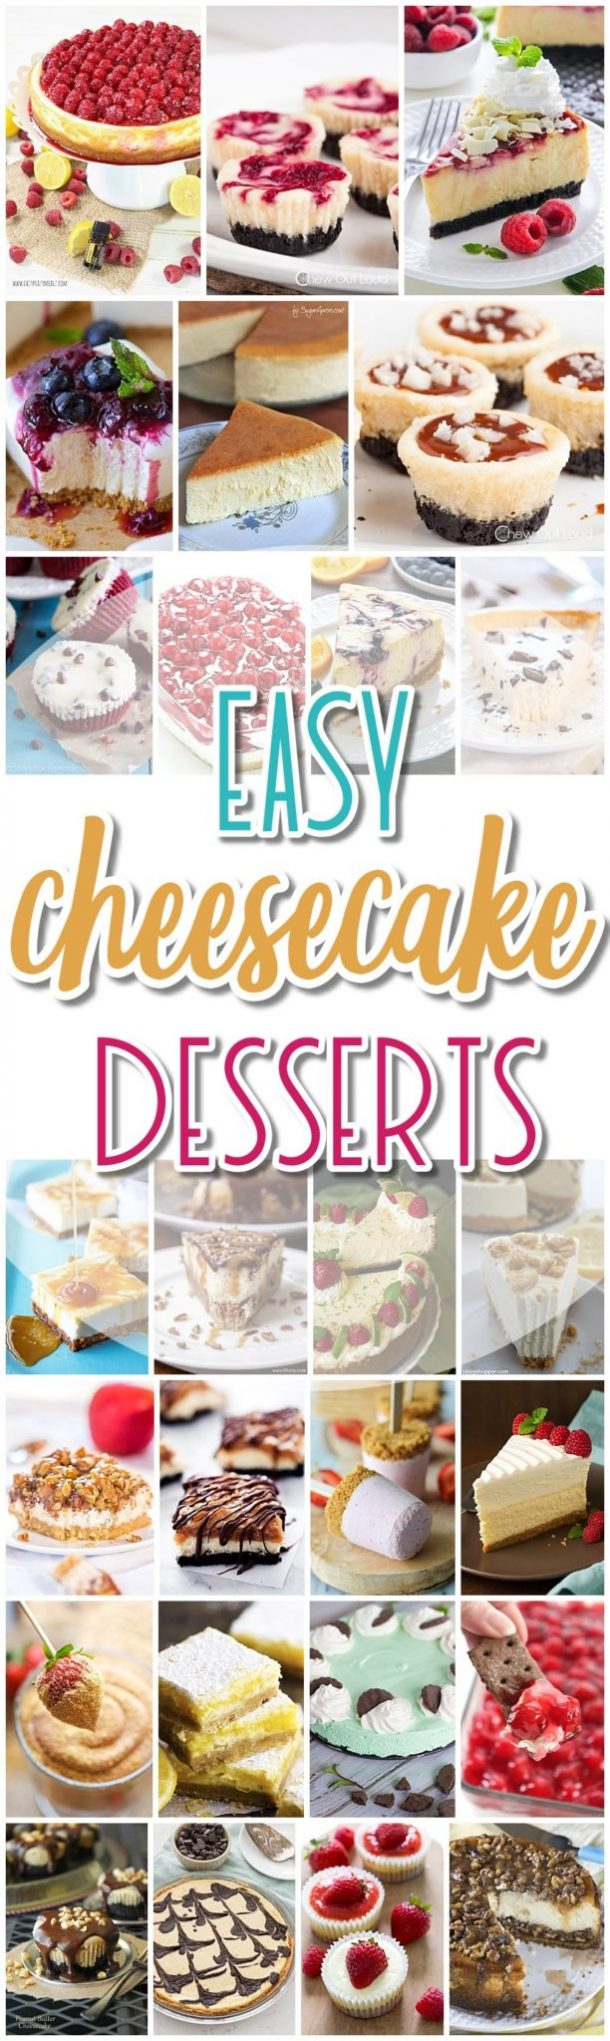 The BEST Cheesecakes Recipes - Favorite Easy Party Desserts for Easter, Mother's Day Brunch or any celebration - Dreaming in DIY